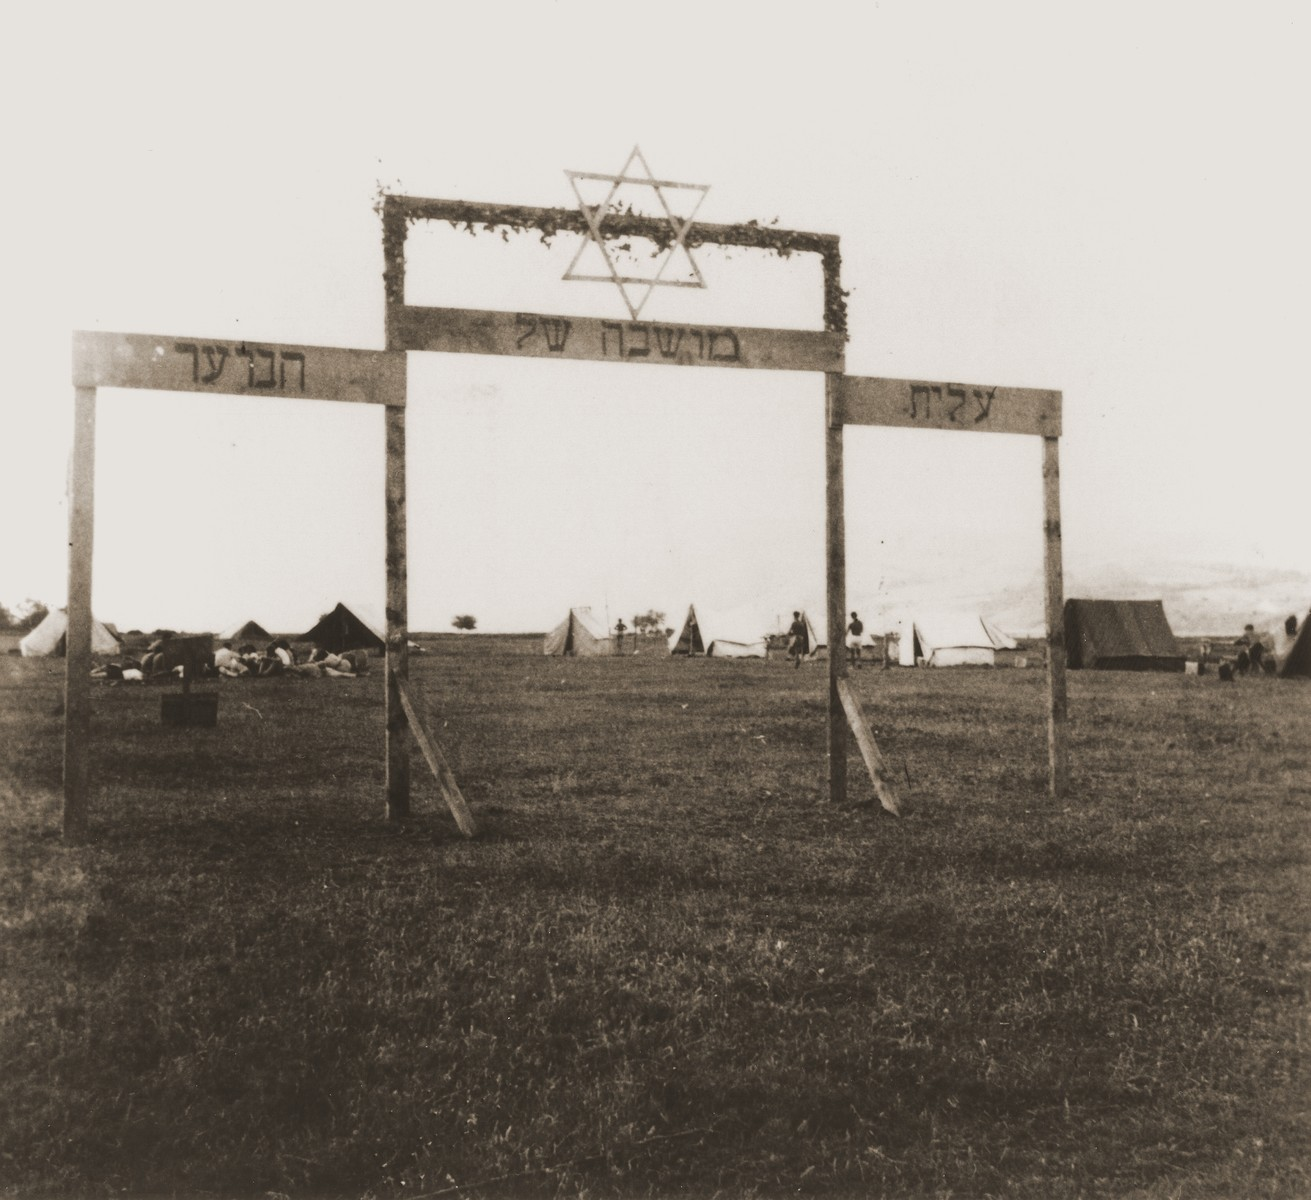 The entrance to the Aliyat Hanoar Zionist youth camp established by members of the Kladovo transport.